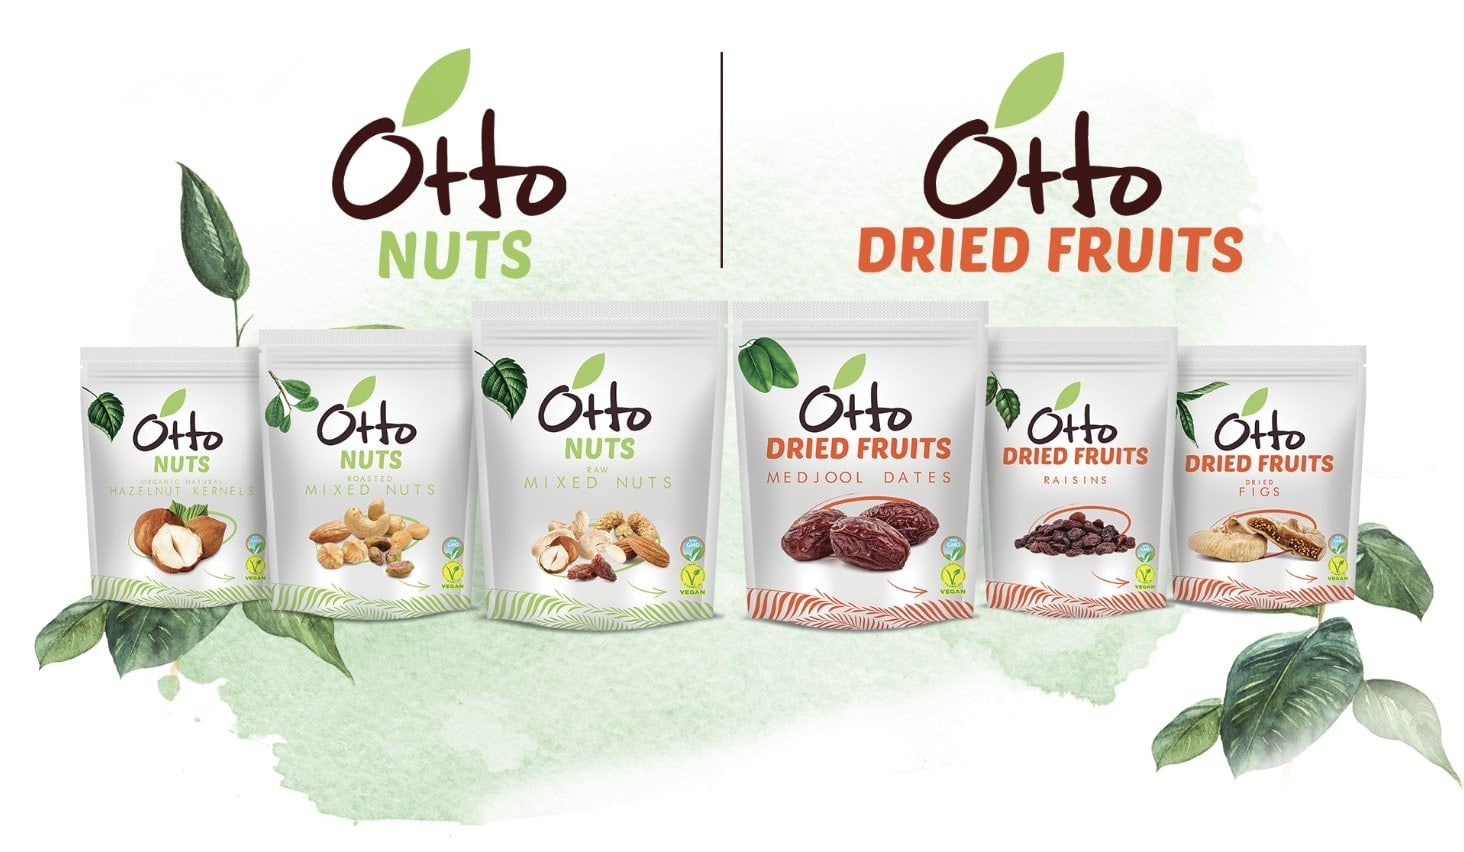 Otto NUTS & DRIED FRUITS - 07.02.2020